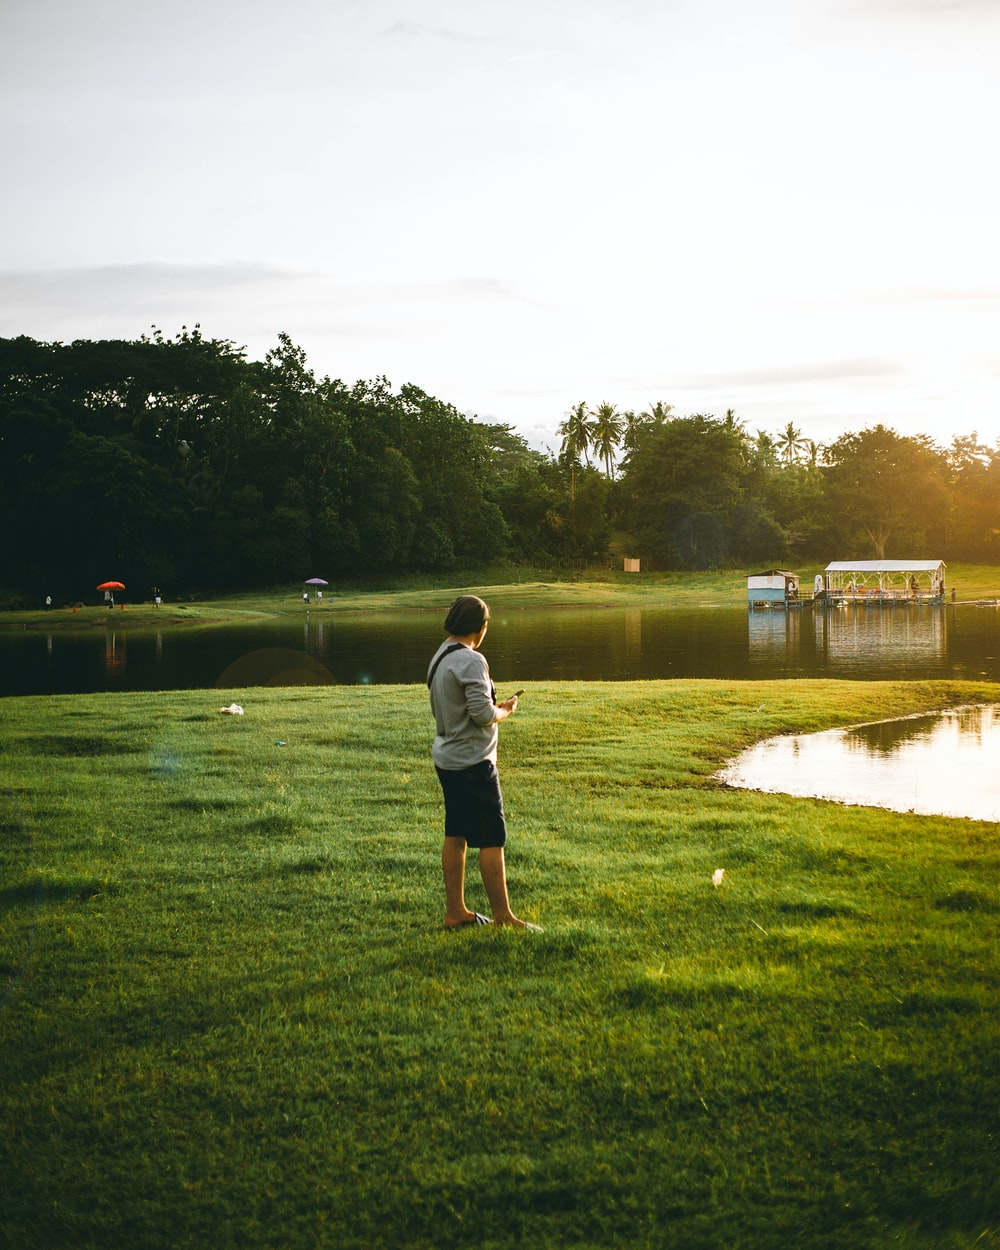 man in white t-shirt and black shorts standing on green grass field near lake during